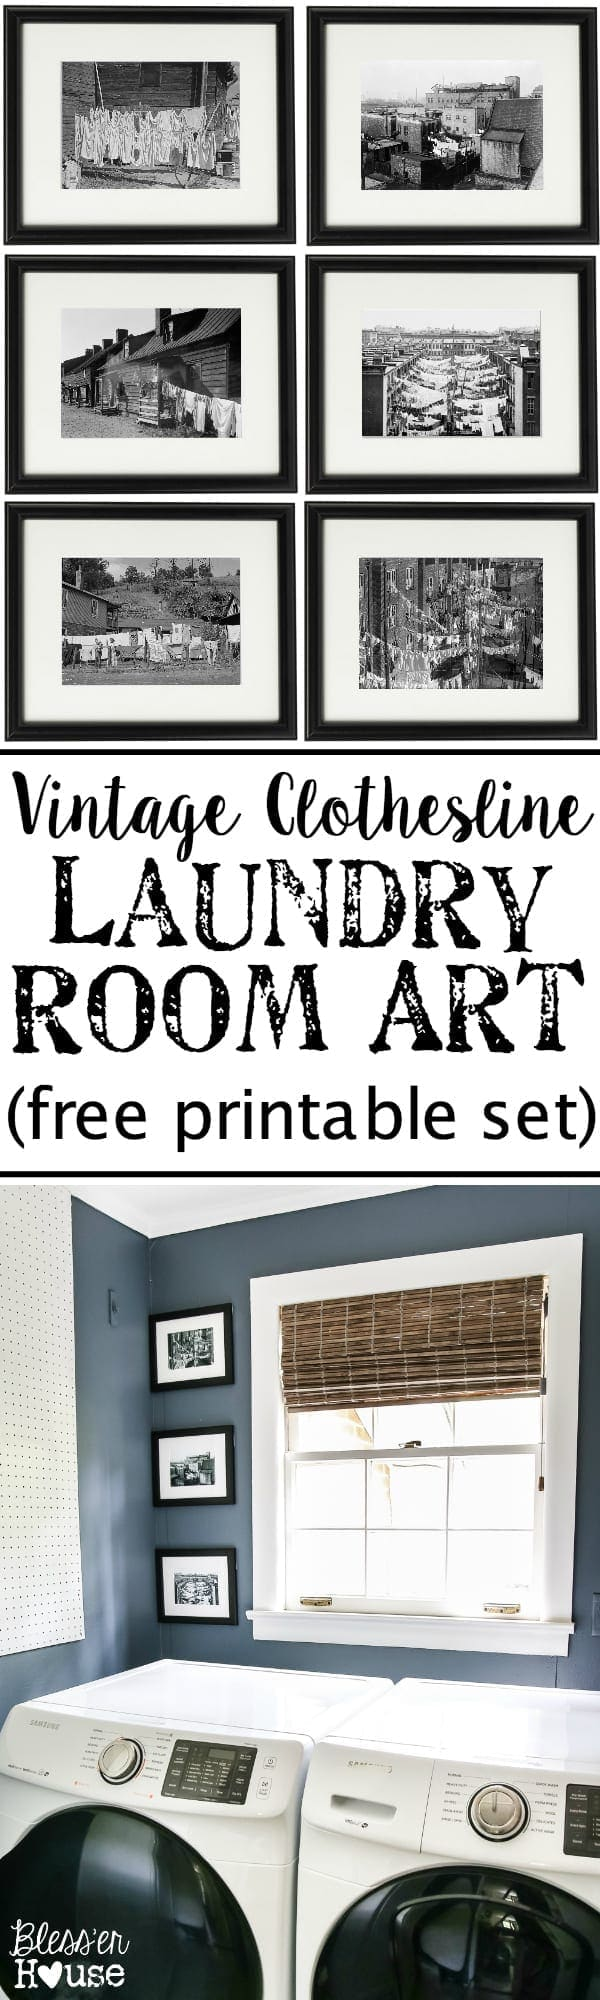 Vintage Clothesline Laundry Room Art Printable Set Bless